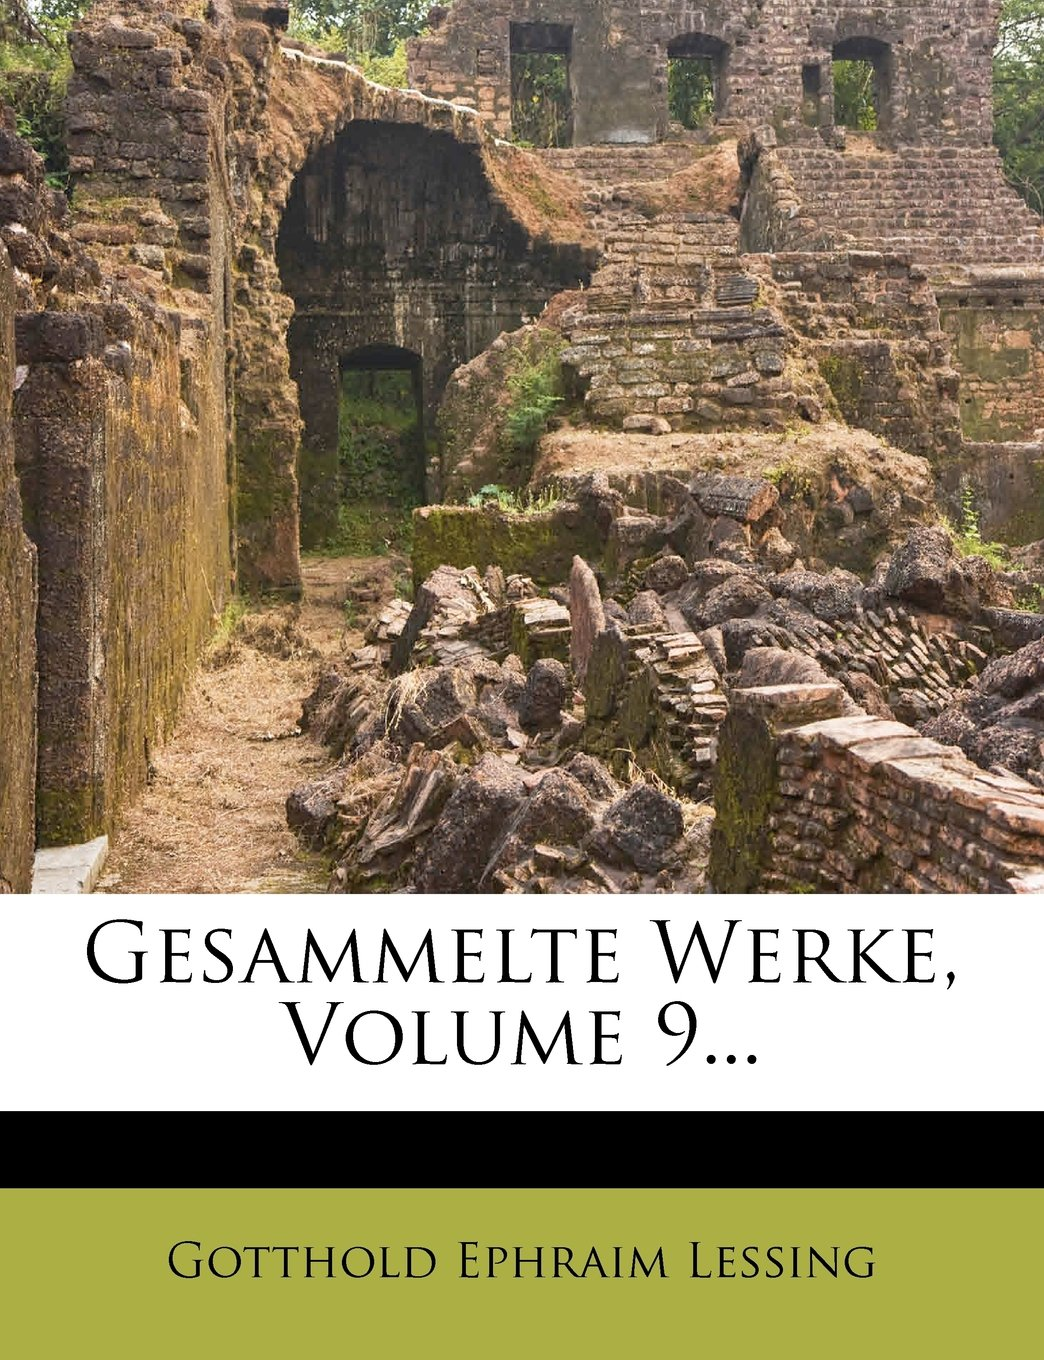 Gesammelte Werke, Volume 9... (German Edition) ebook